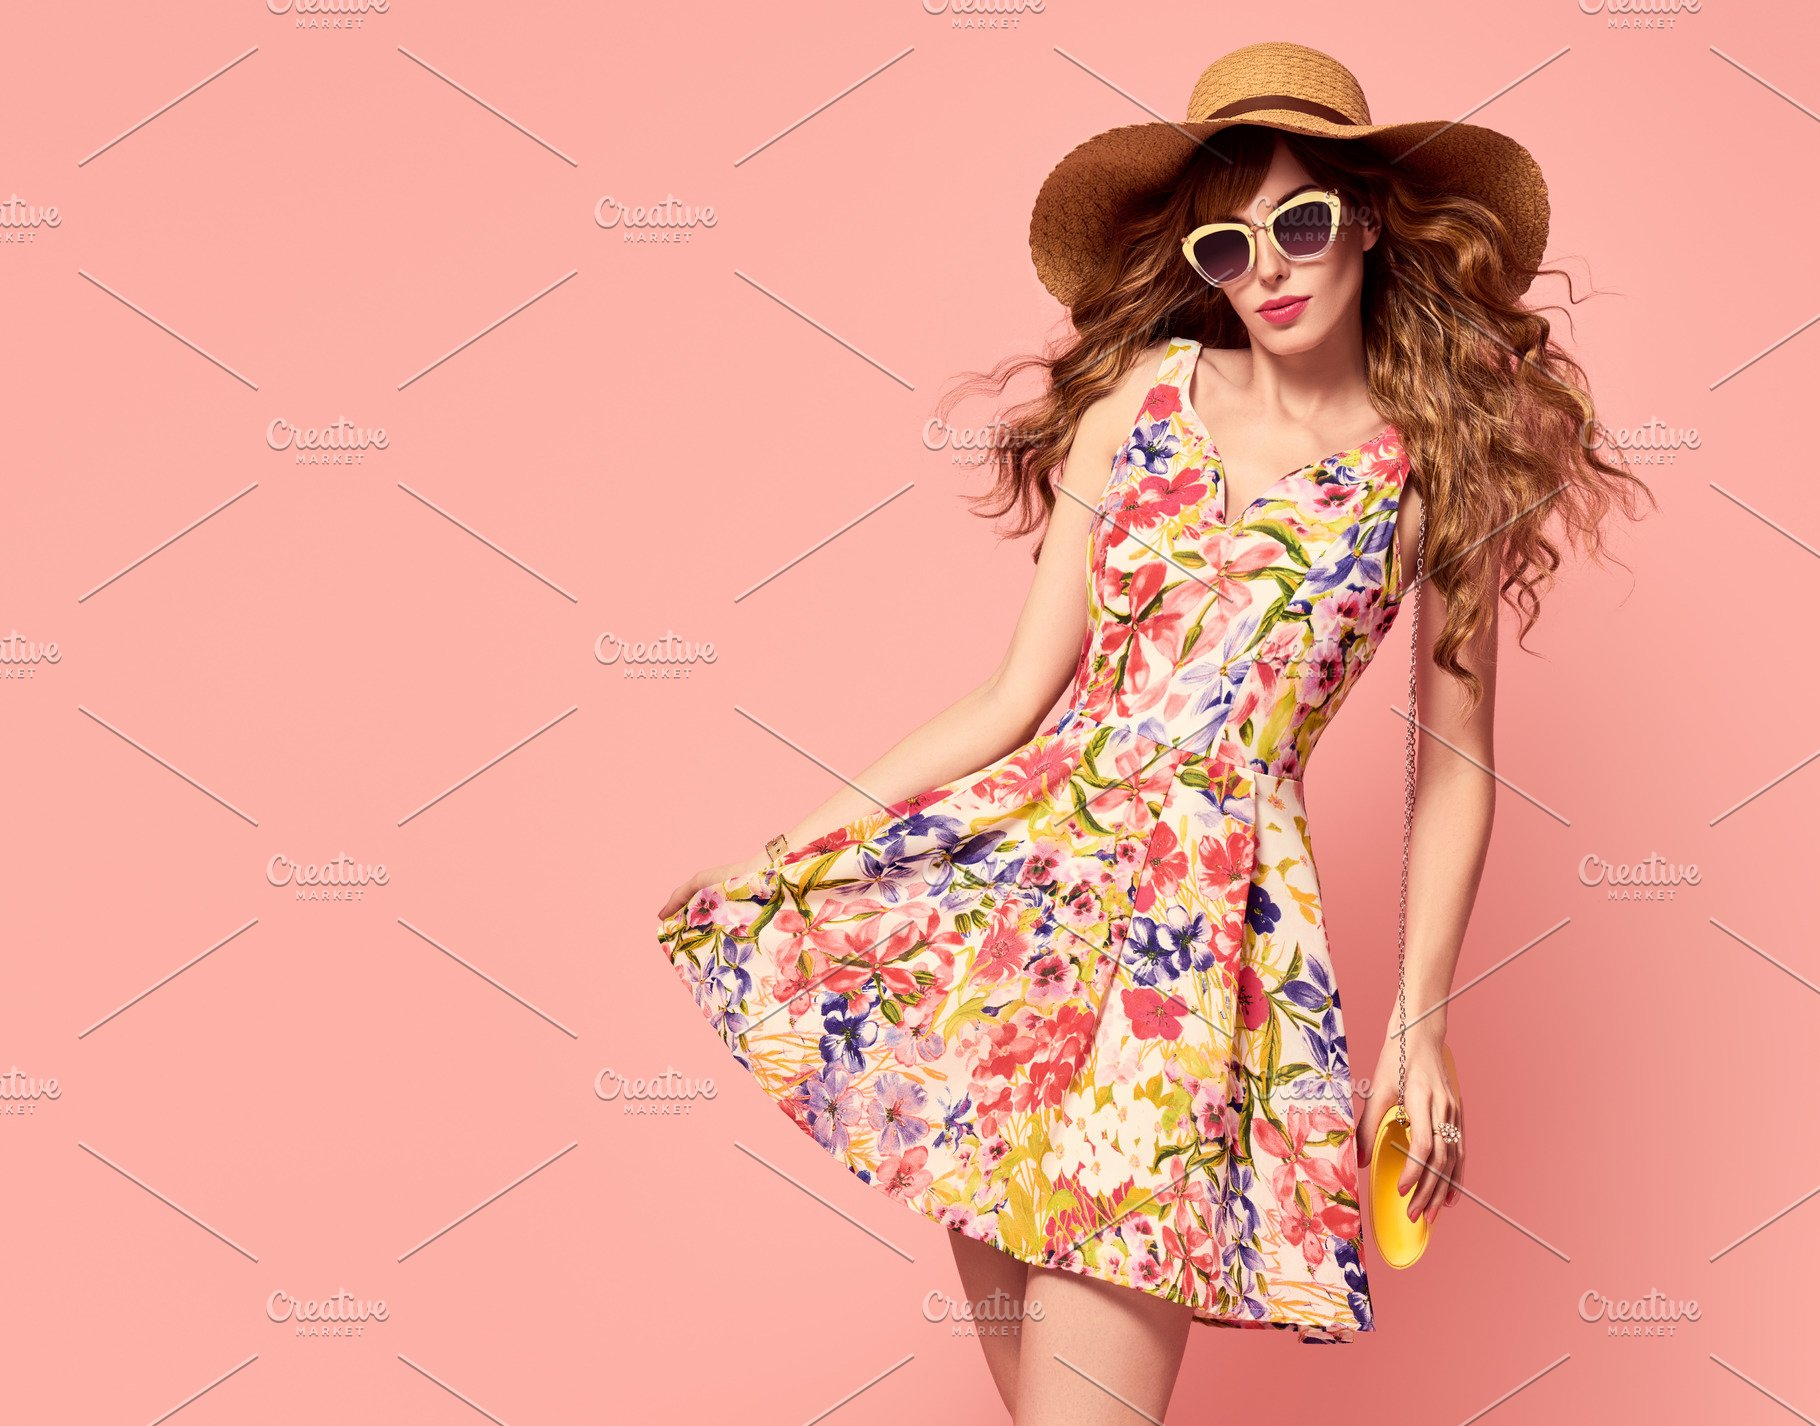 a41805fc6d8 Playful Summer Lady. Floral Dress ~ Beauty   Fashion Photos ...